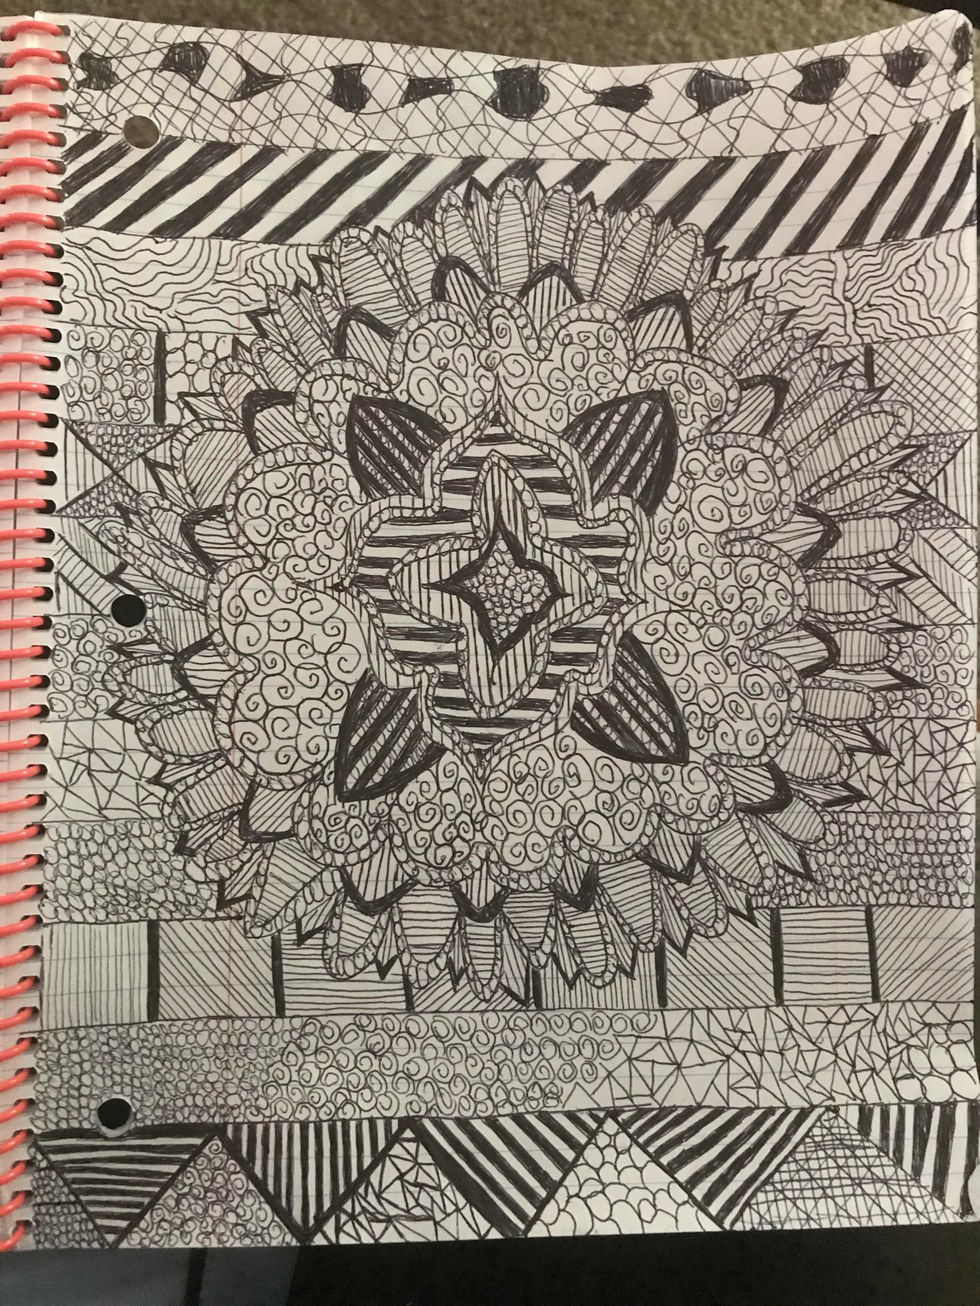 My Life Has Been Taken OverBy Doodling